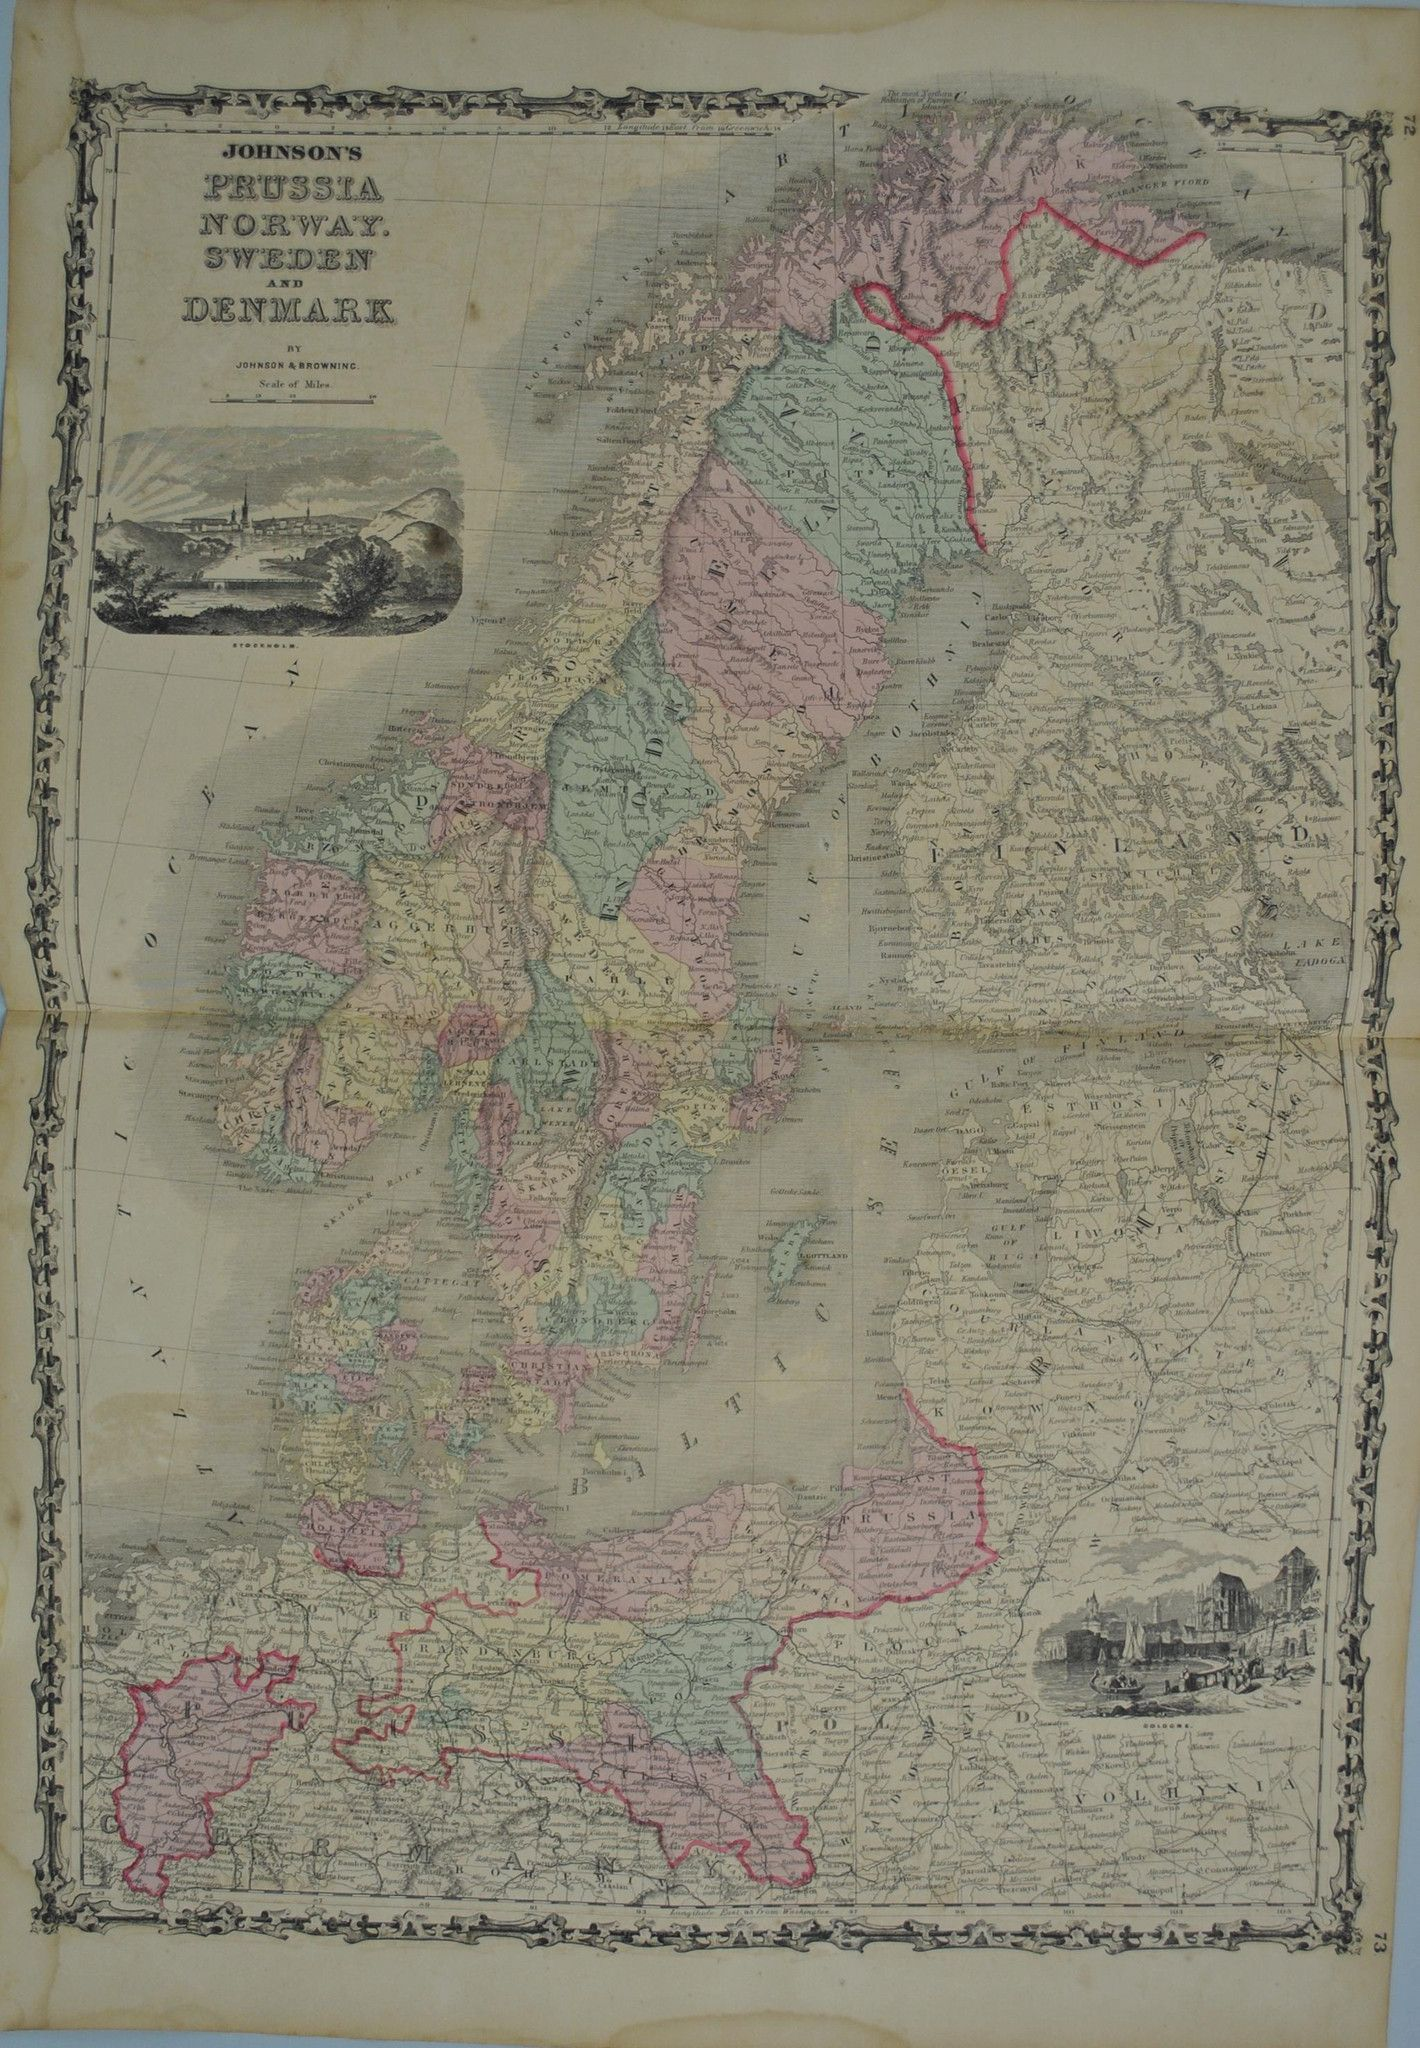 1860 Prussia Norway Sweden Denmark - Johnson | Products ... on 1860 map of liberia, 1860 map of mexico, 1860 map of upper silesia, 1860 map of czechoslovakia,